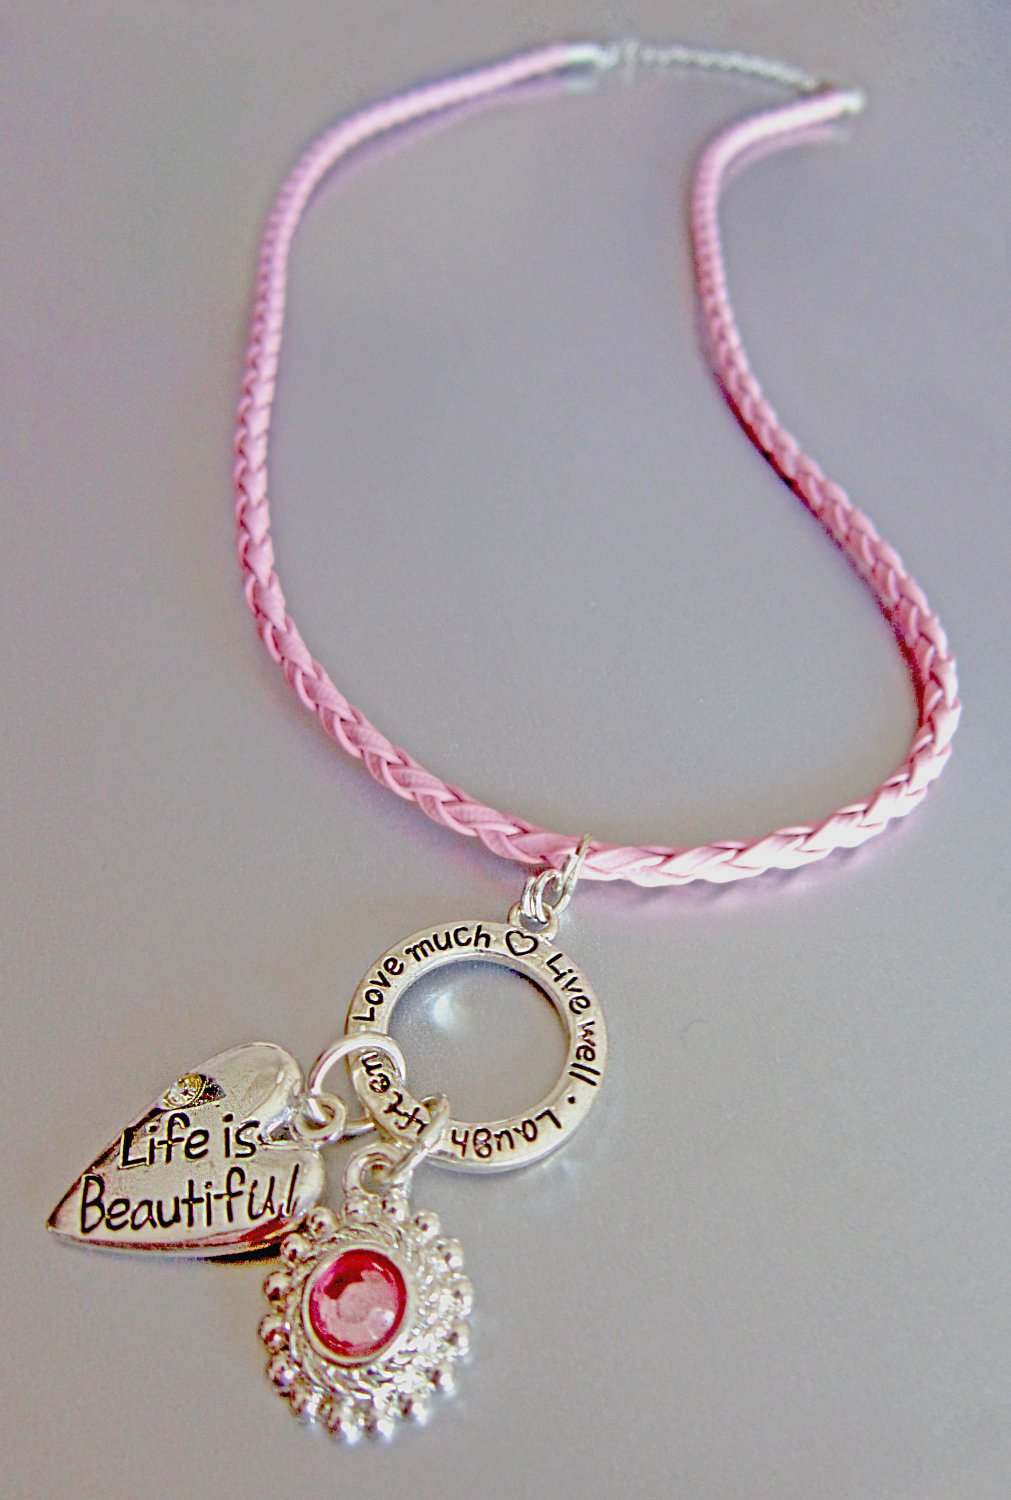 Express Yourself! Live.Laugh.Love Necklace